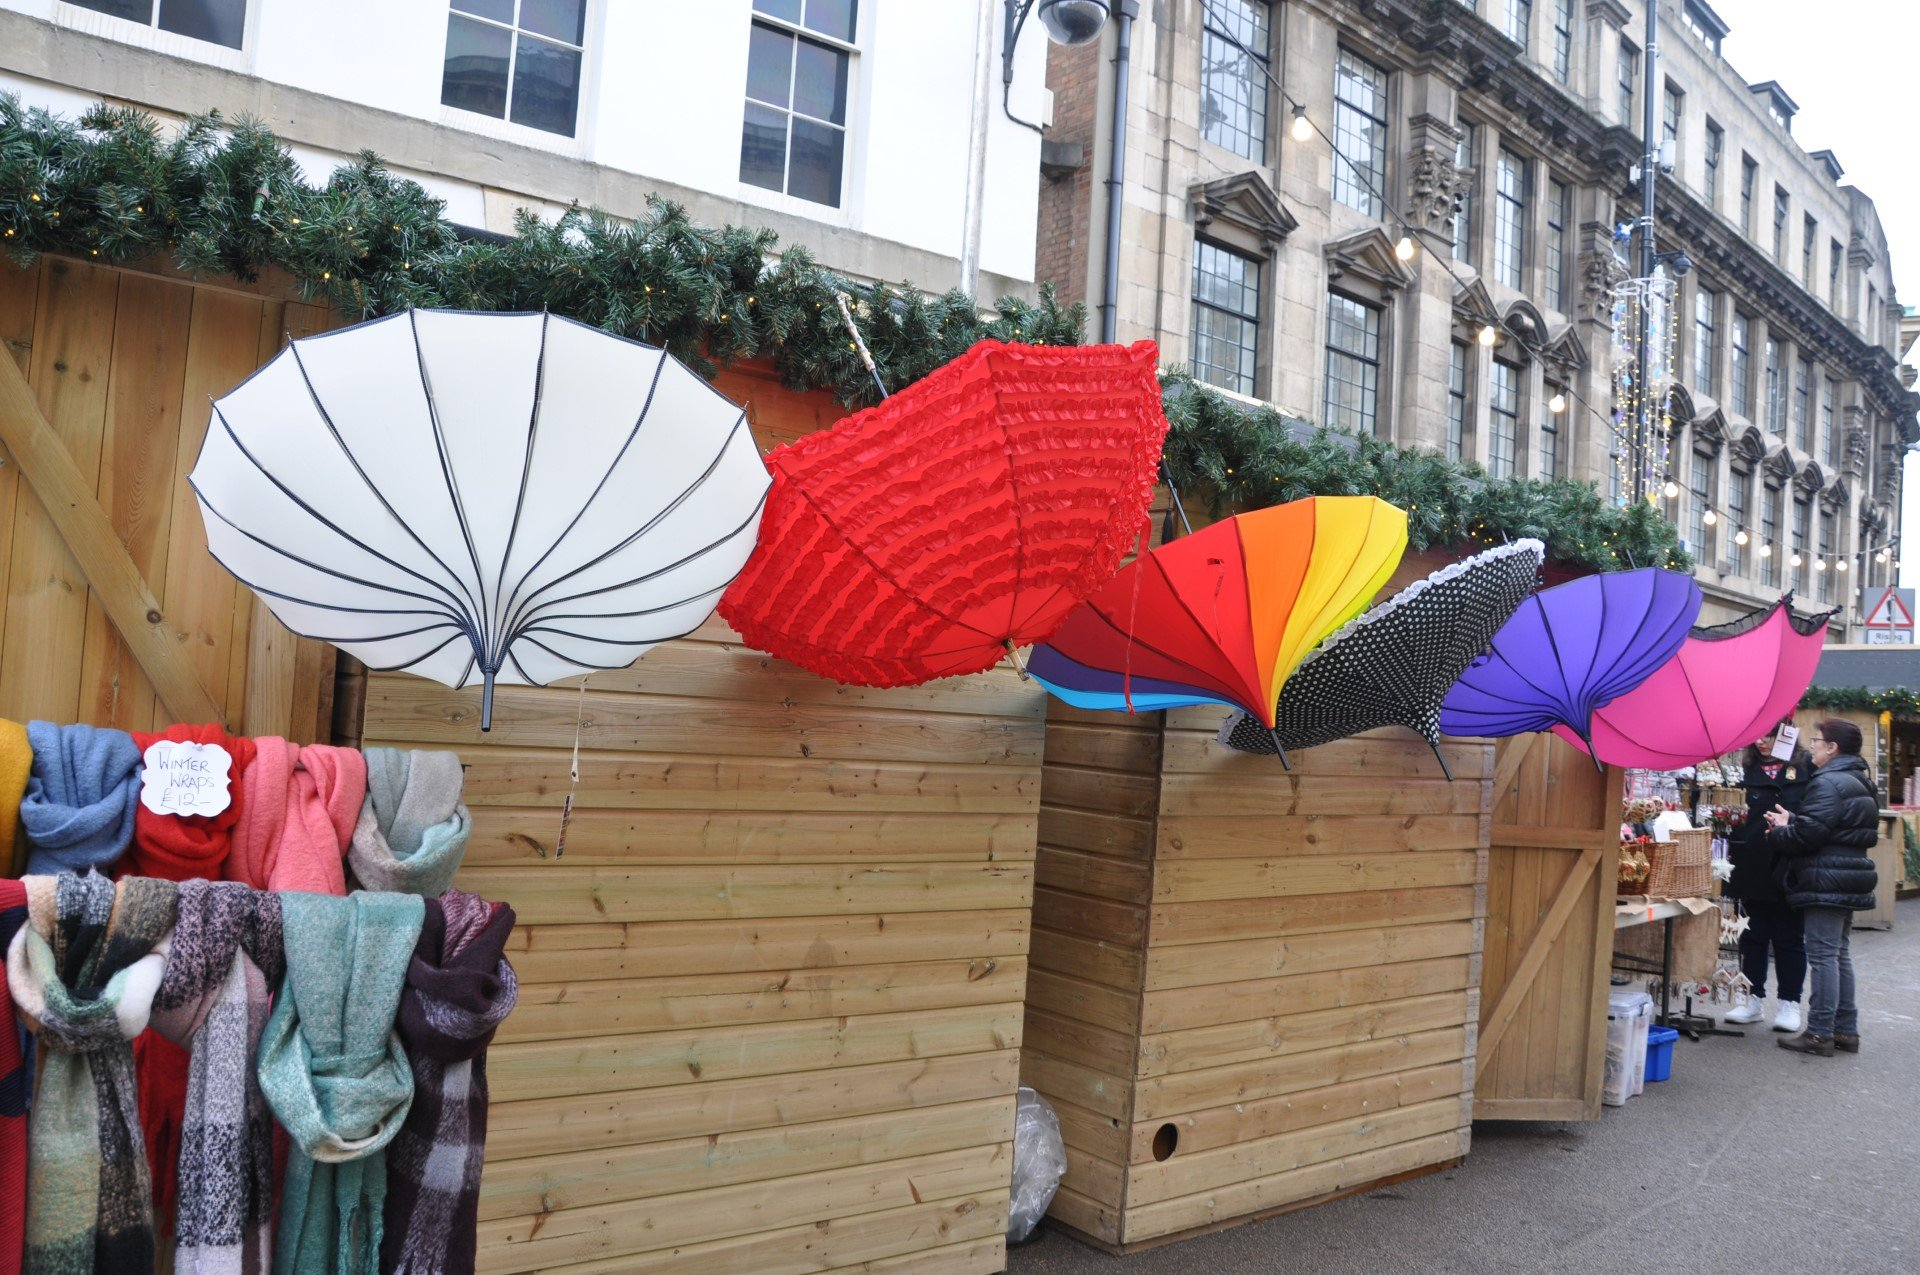 In Pictures: Oxford Christmas Market 2019 - Gallery Image 51